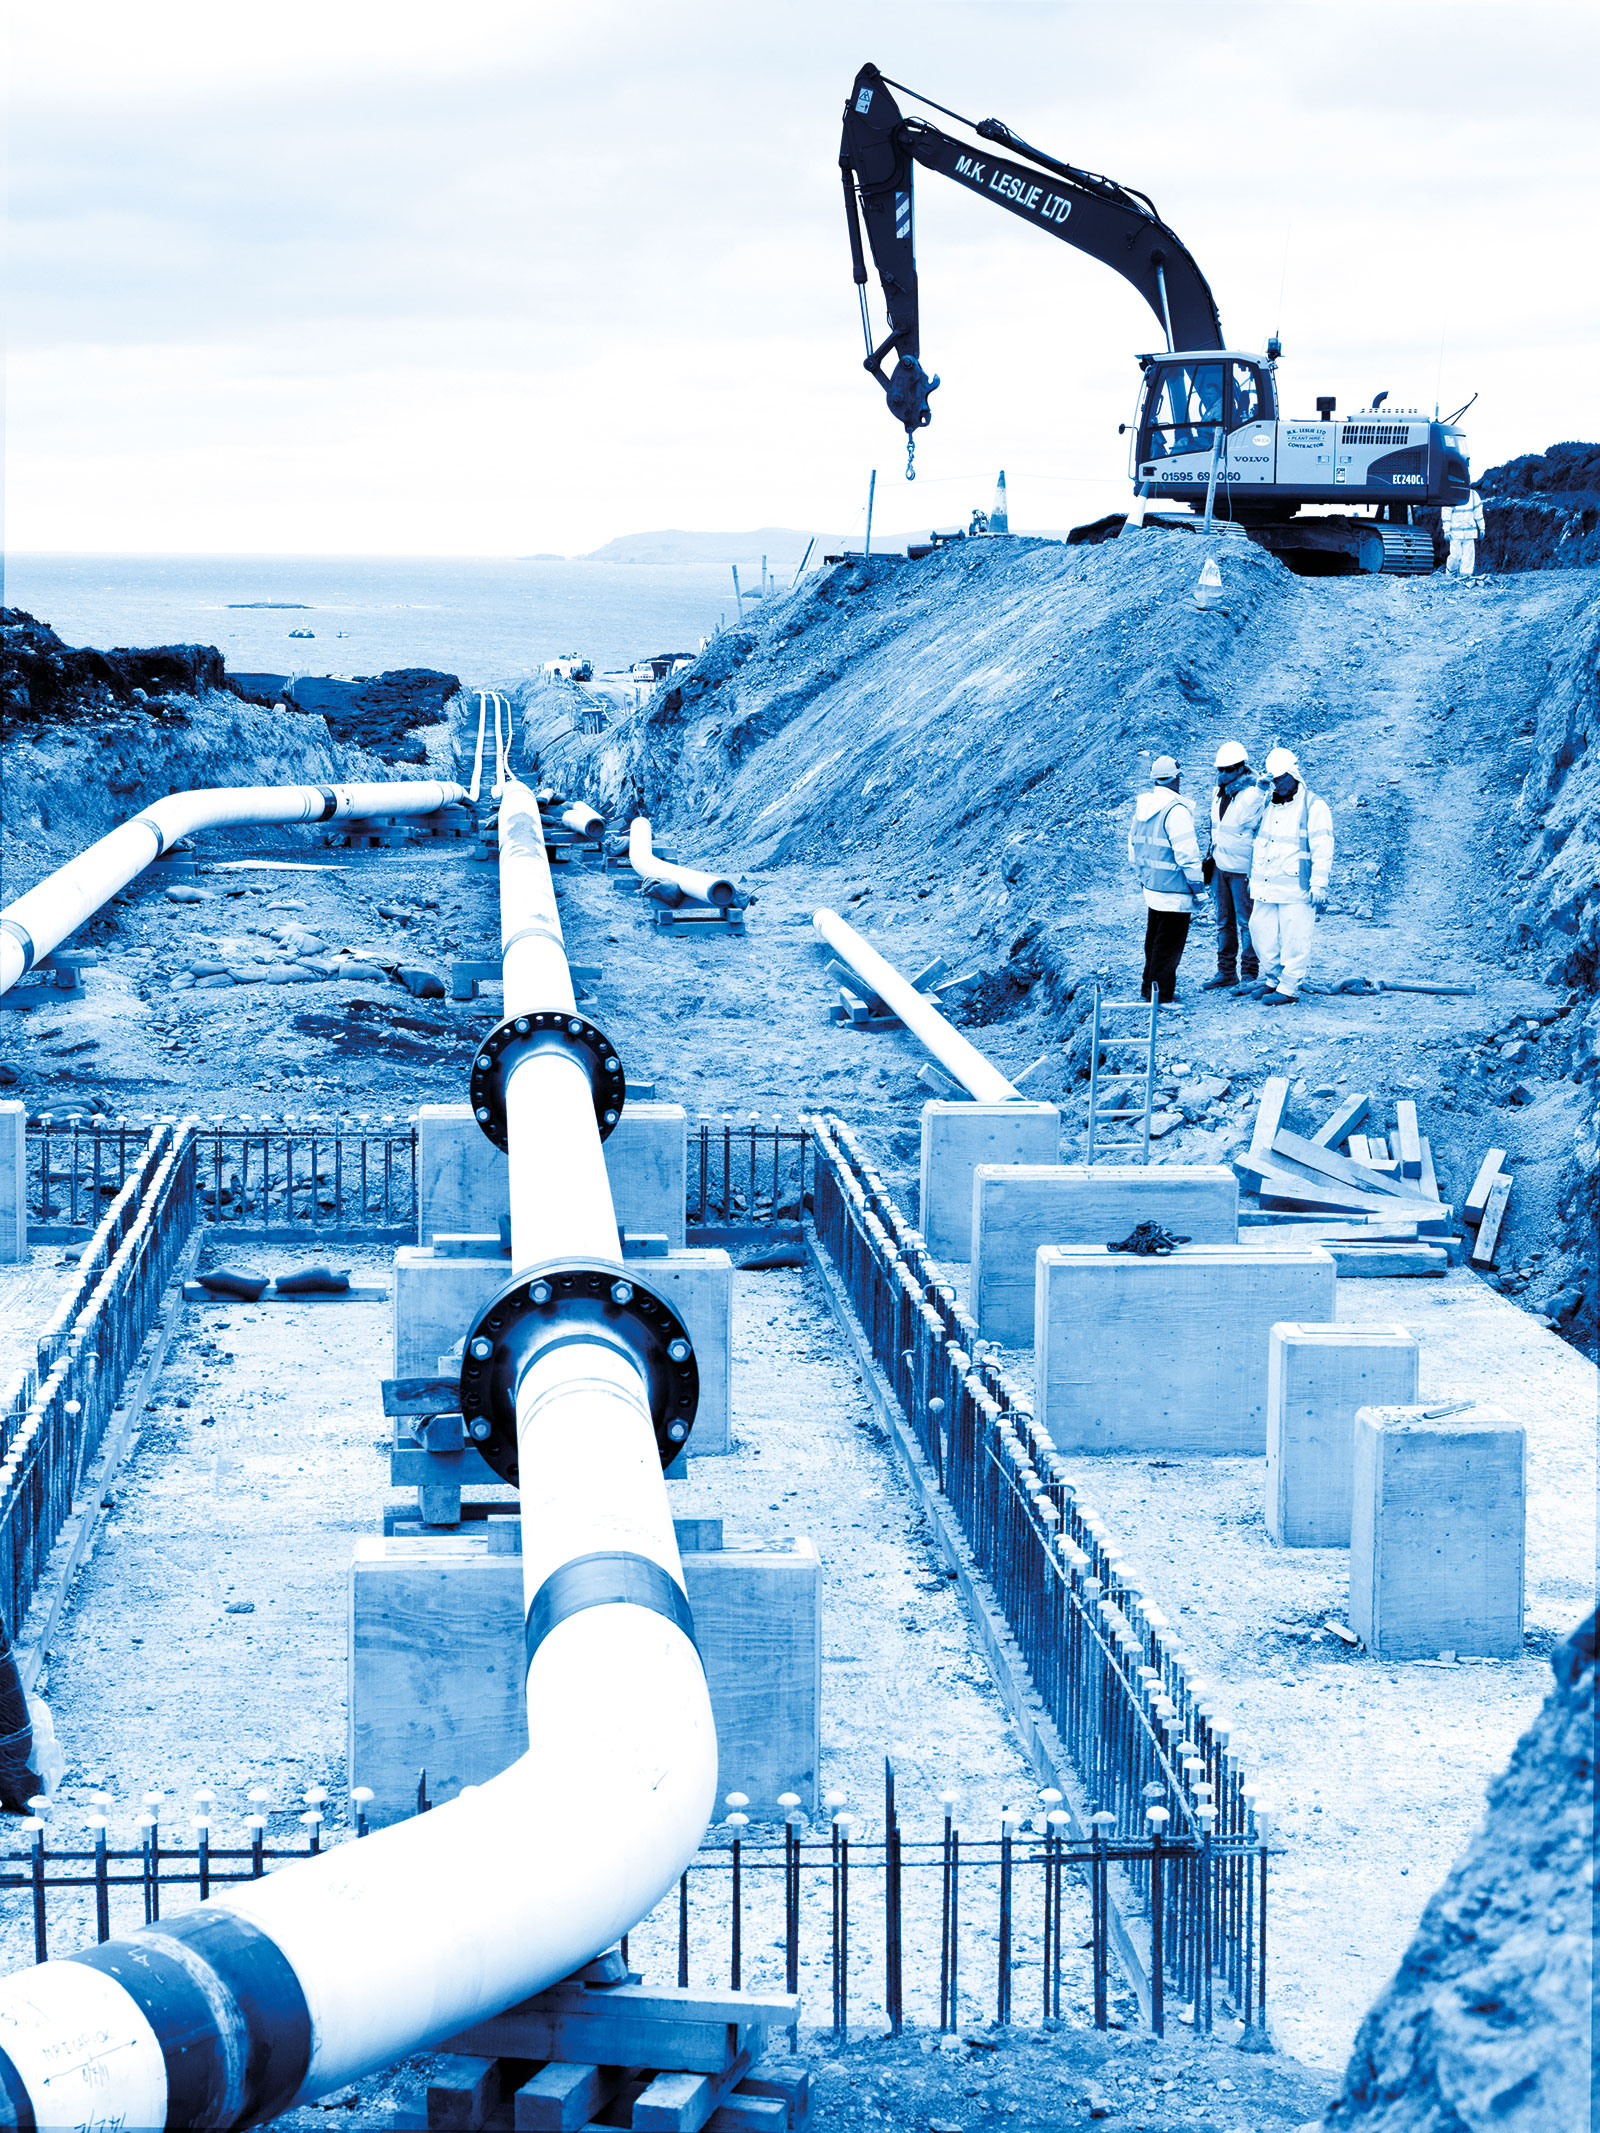 Construction of gas pipelines, Laggan Tormore project, Shetland Islands, Scotland.